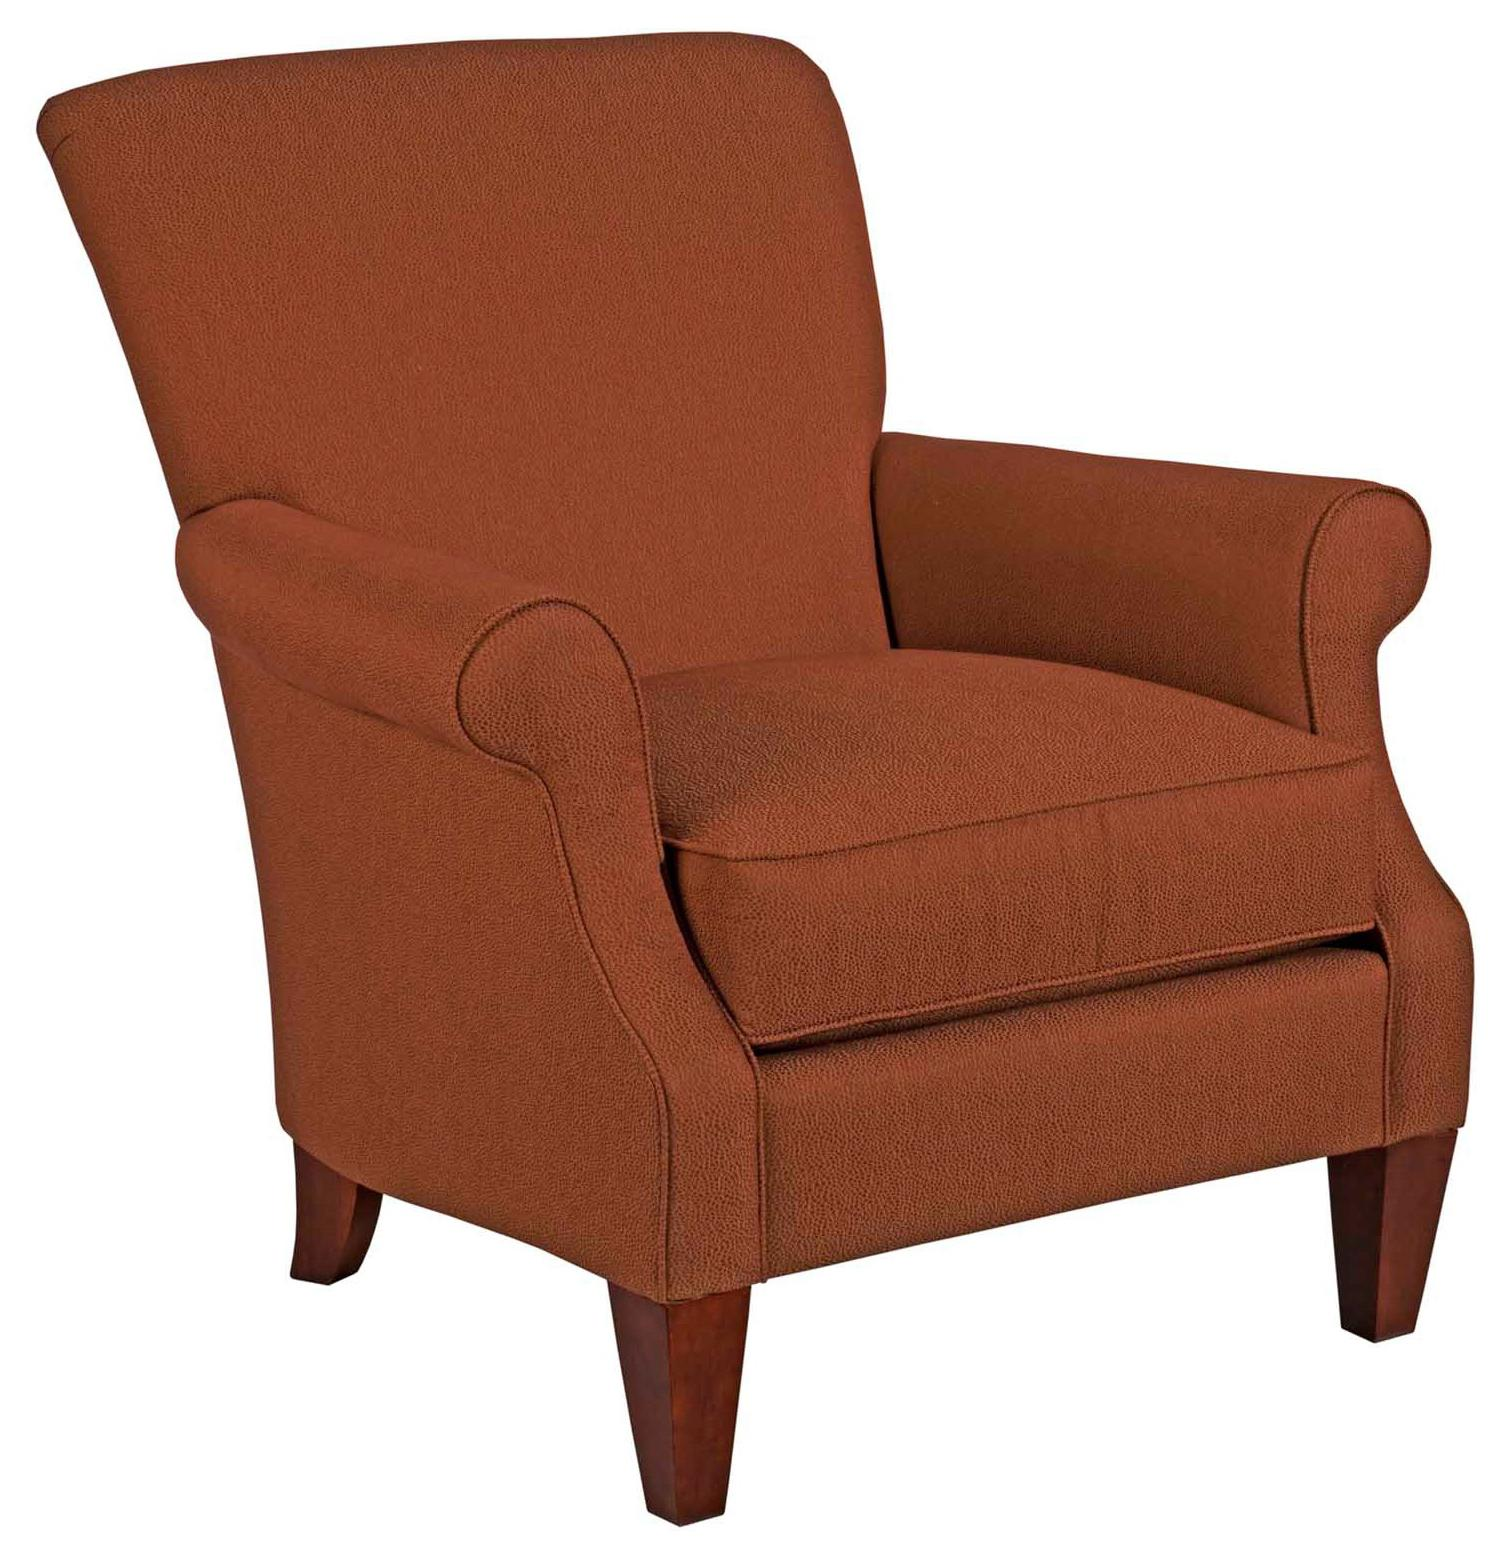 Broyhill Furniture Accent Chairs And Ottomans 9031 0